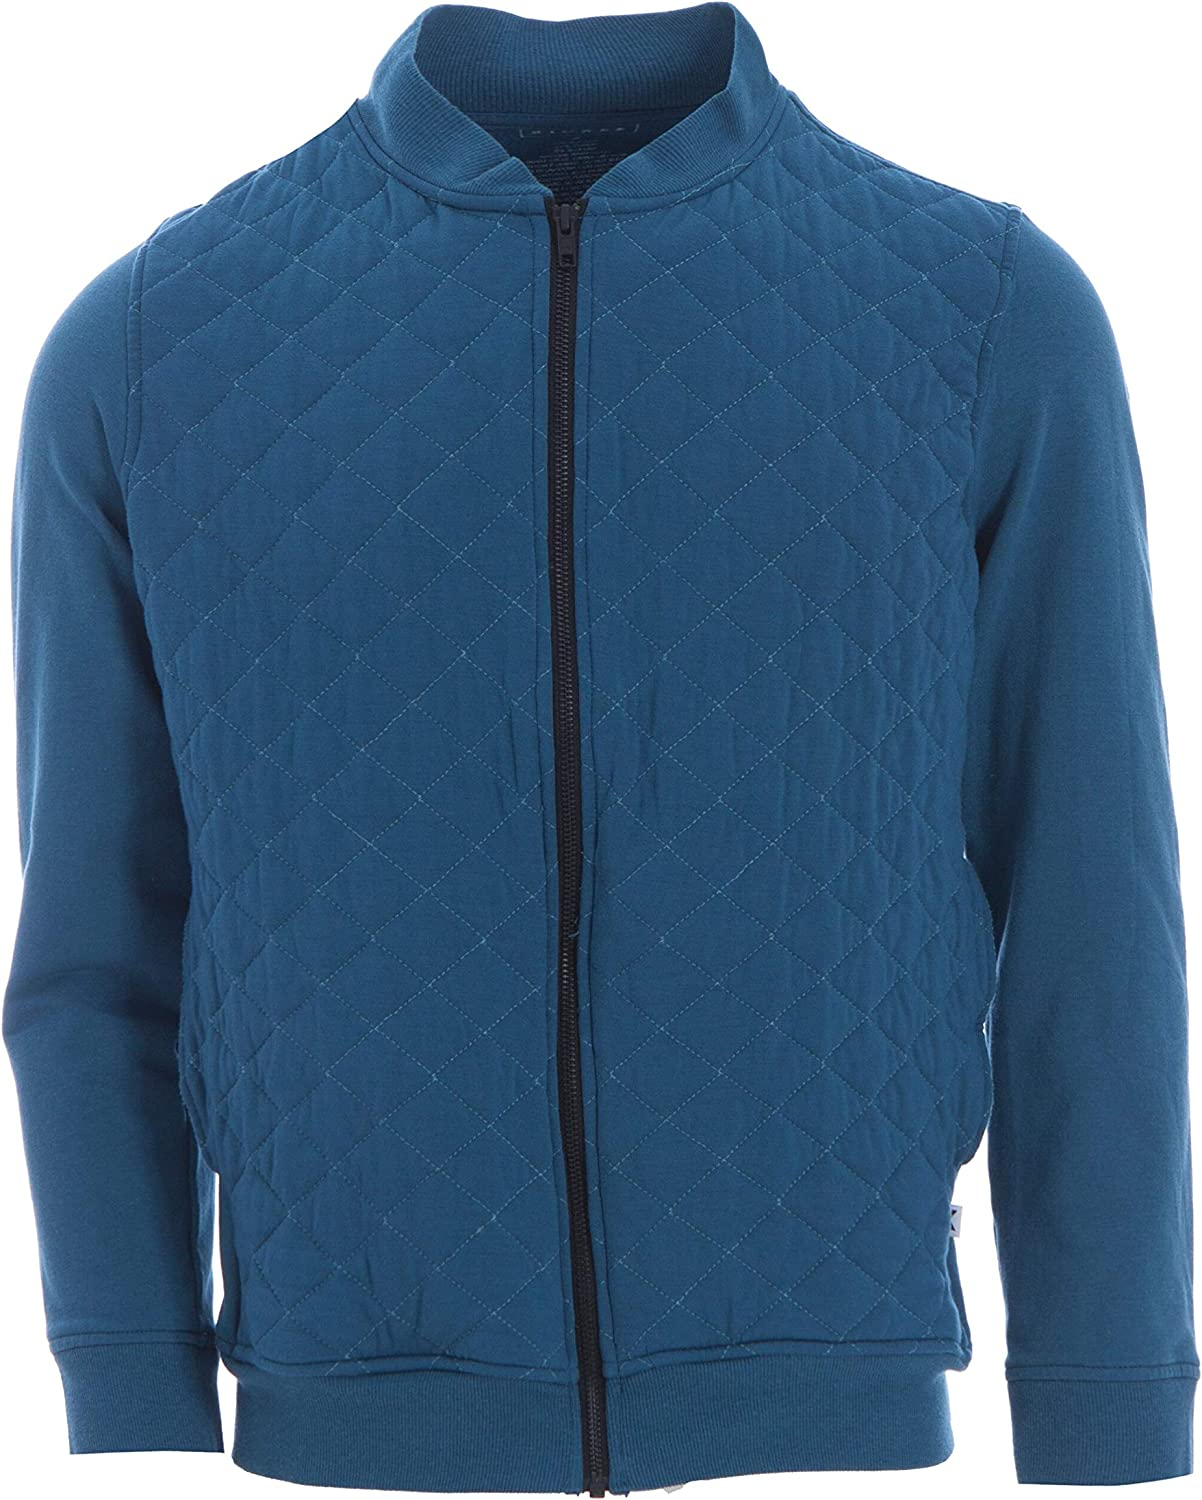 KicKee Menswear Solid Quilted Jacket   Oceanography Collection  